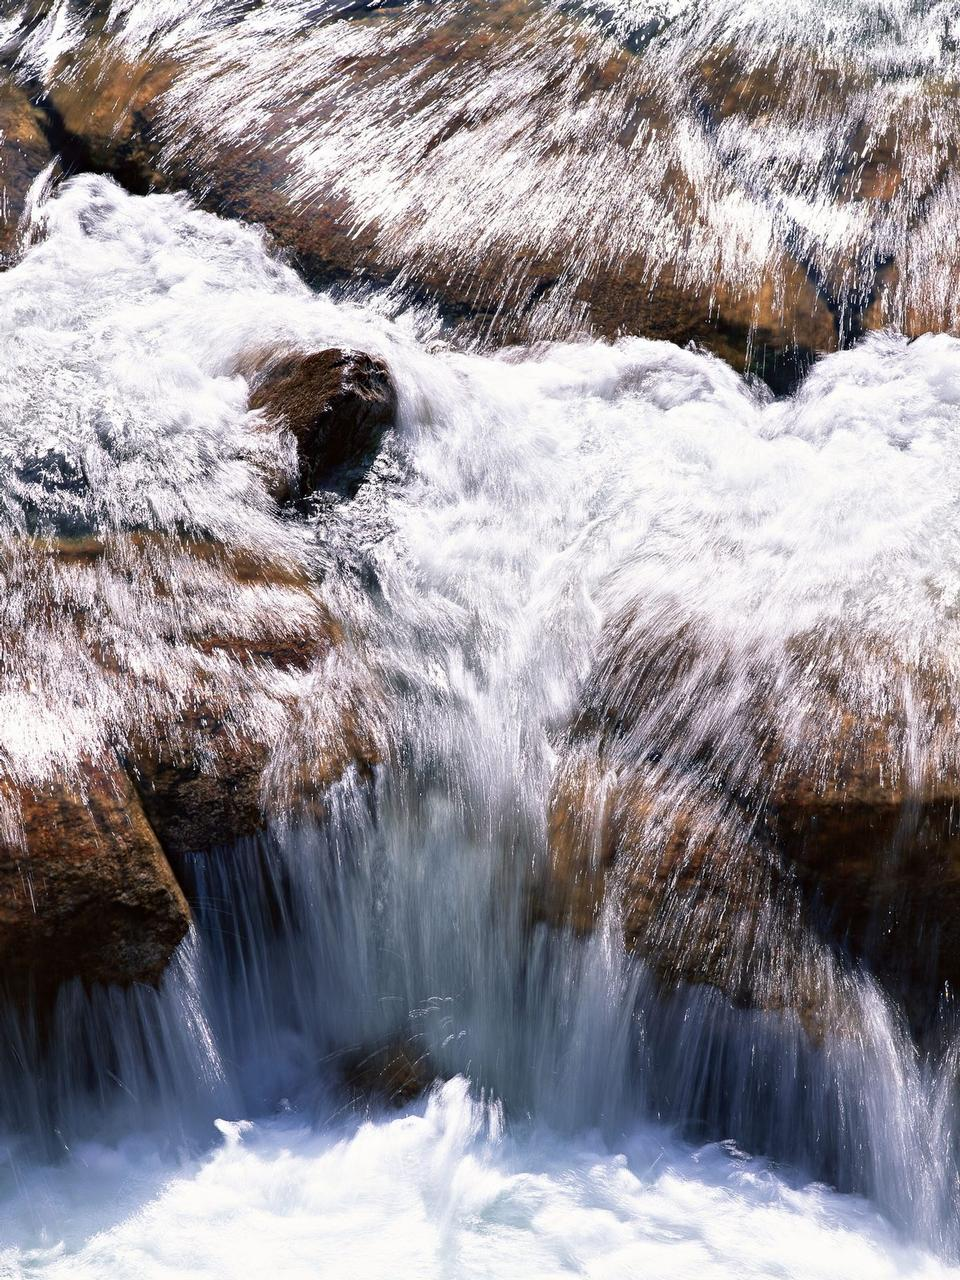 stones and mountain river with small waterfall, blurred backgroun